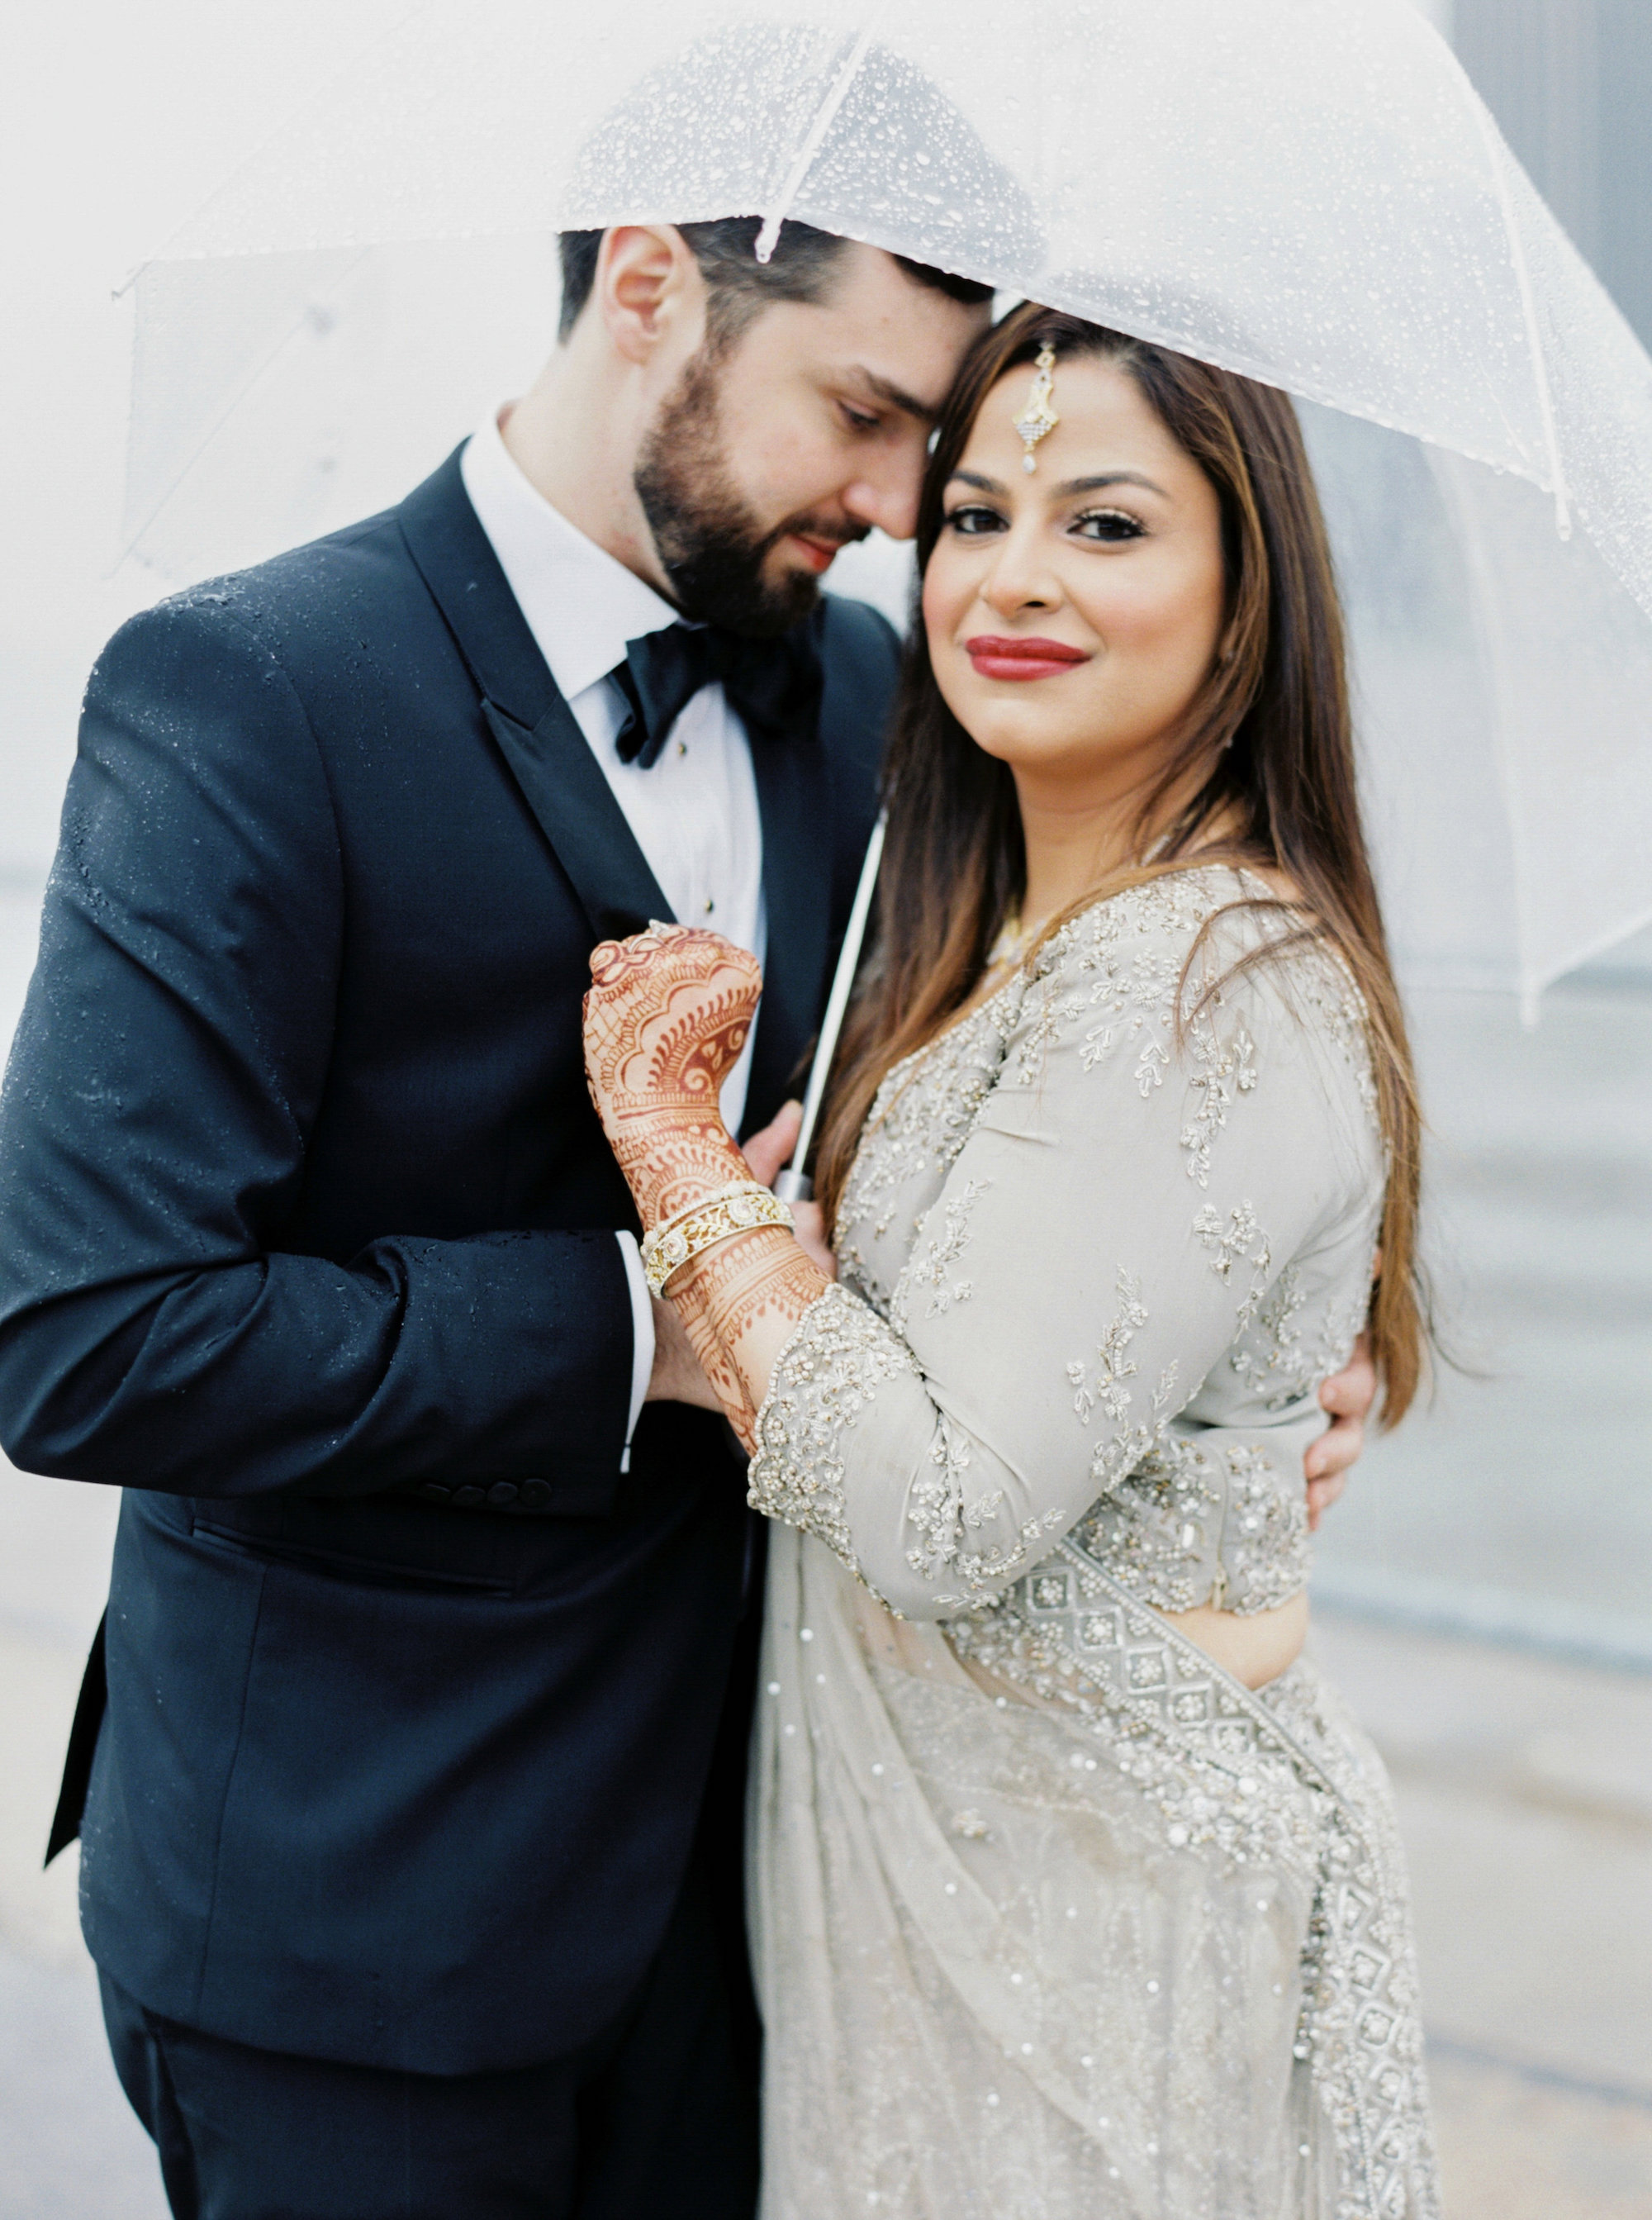 Rainy Day Couple Portrait | Colorful & Sweet Brooklyn Wedding | The Green Building